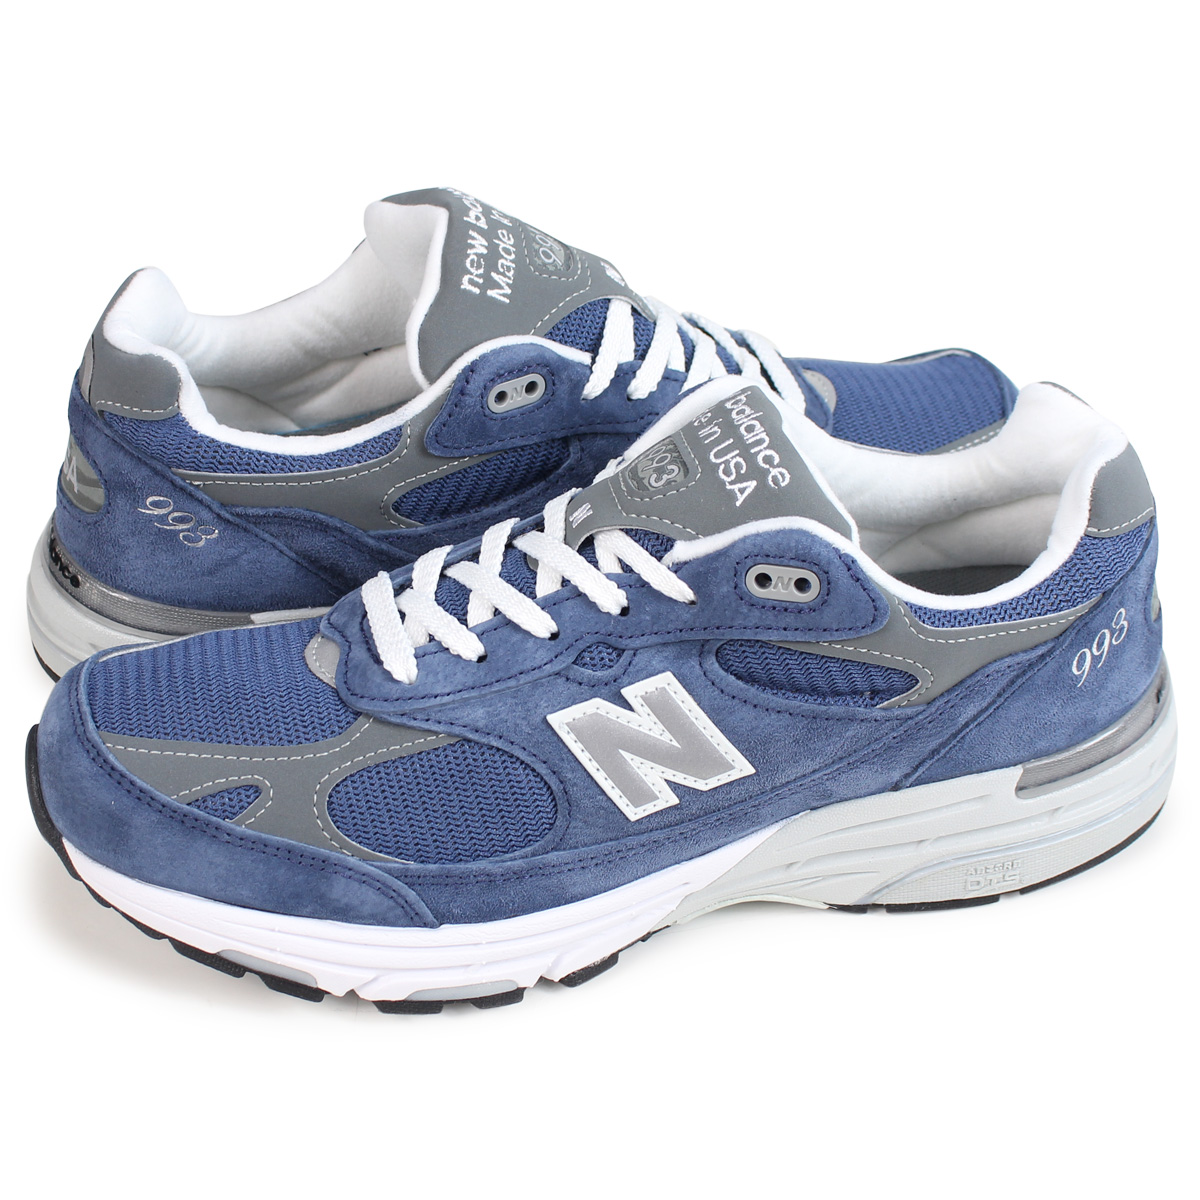 reputable site f46e0 9b535 new balance MR993VI New Balance 993 men's sneakers D Wise MADE IN USA blue